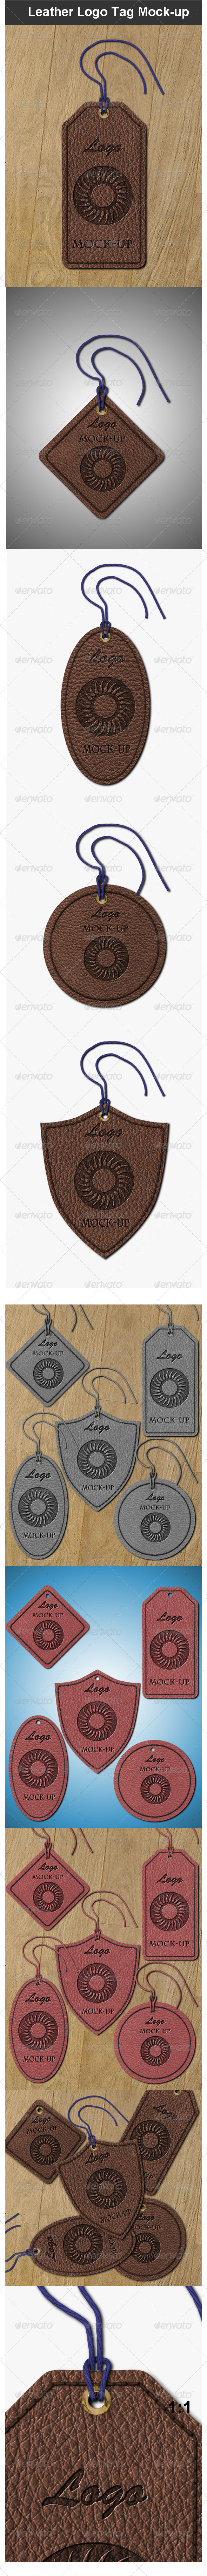 GraphicRiver Leather Logo Tag Mock-up 3774053